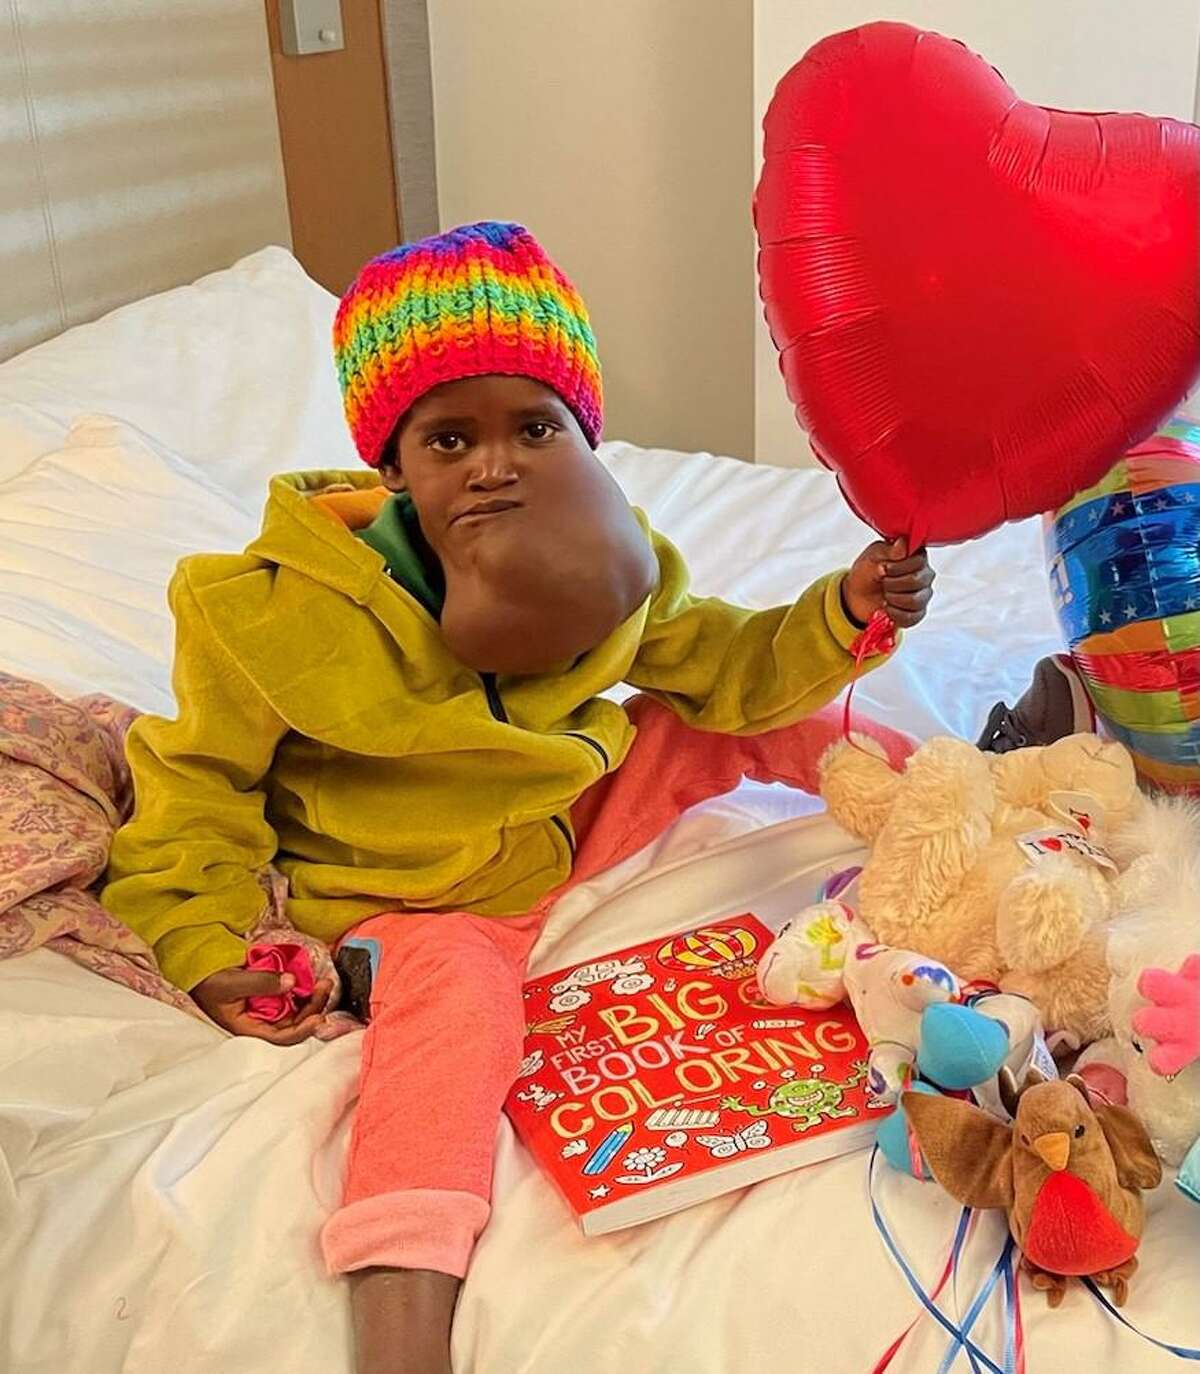 Nagalem Alafa had a venous malformation that was surgically treated in New York City in June of 2021.